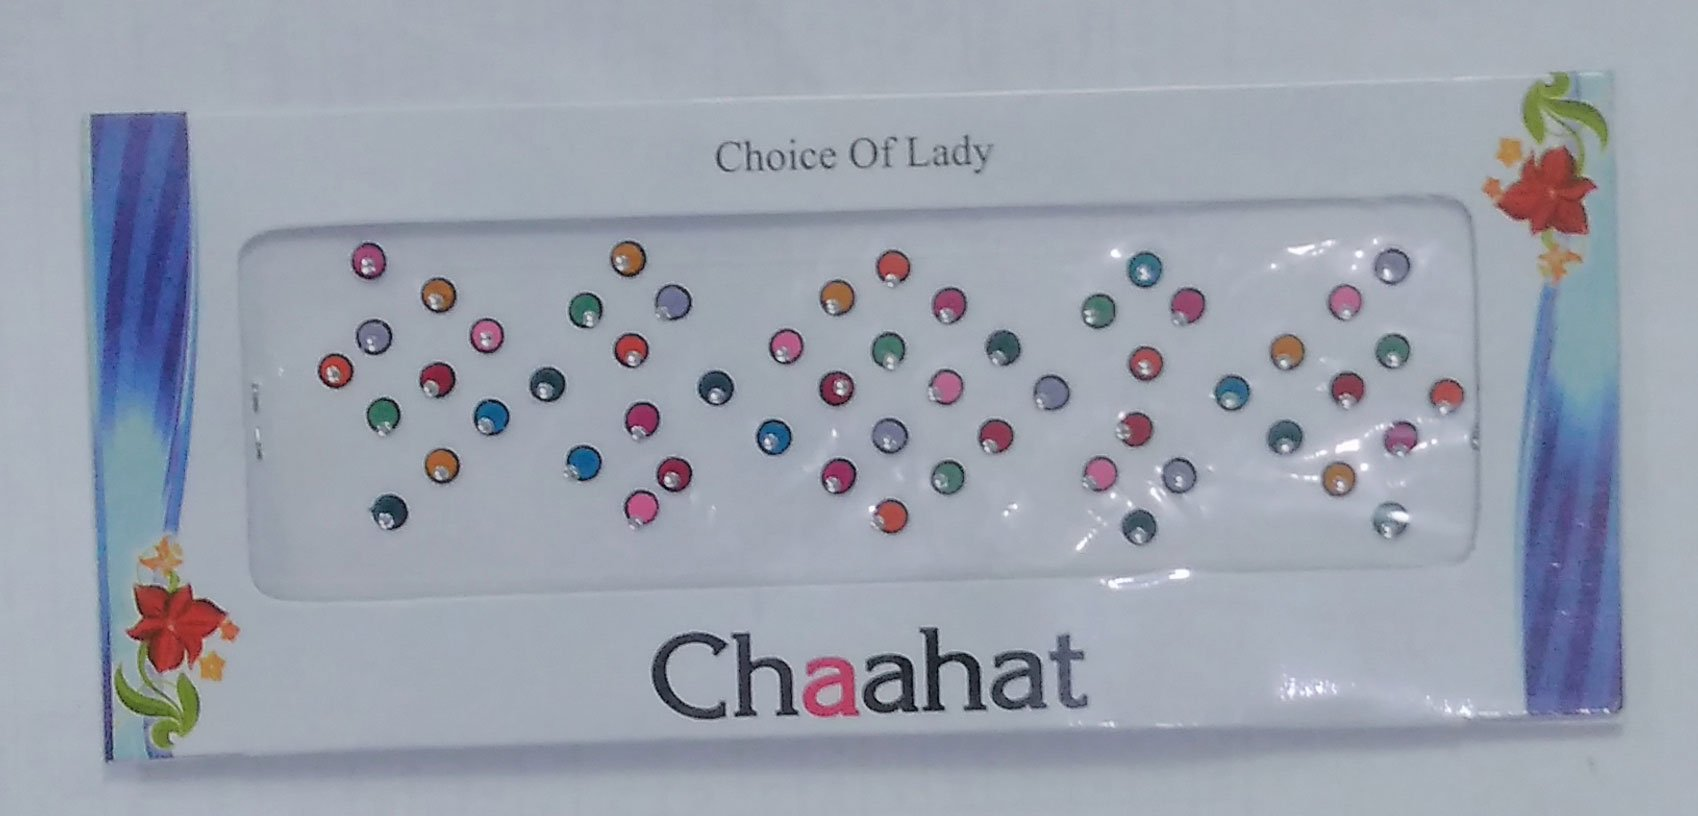 Pack of 12 - Chaahat Choice of Lady Multi Colors Multi Size Small Round Bindi Indian Art Bollywood Reuseable Bindi Self Adhesive Body Stickers/tattoo (BC-7)